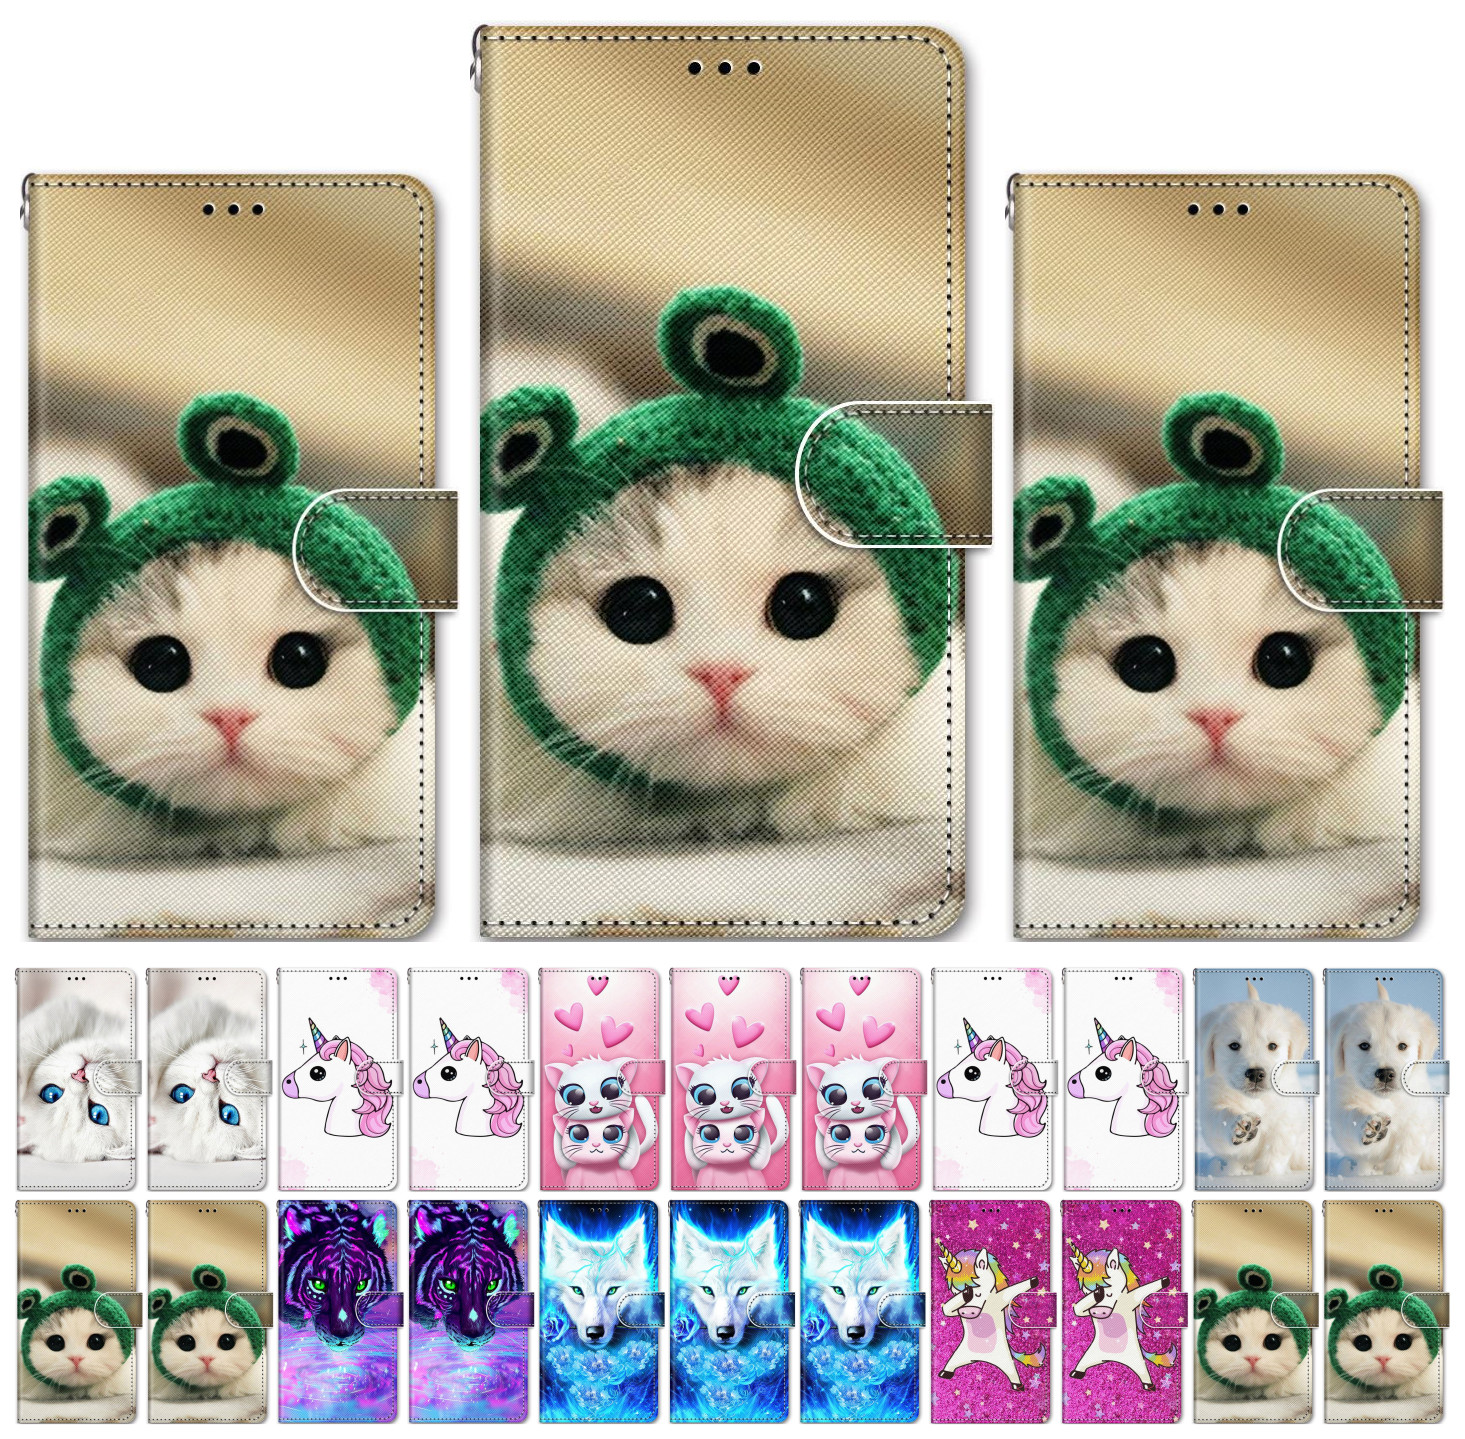 Lovely Cat Dog Flip <font><b>Phone</b></font> <font><b>Case</b></font> For <font><b>Samsung</b></font> Galaxy A3 2015 <font><b>A5</b></font> <font><b>2016</b></font> A6 A7 A8 2018 A9 Star Pro A750 A530 A520 A510 S5 Flip Box P08F image